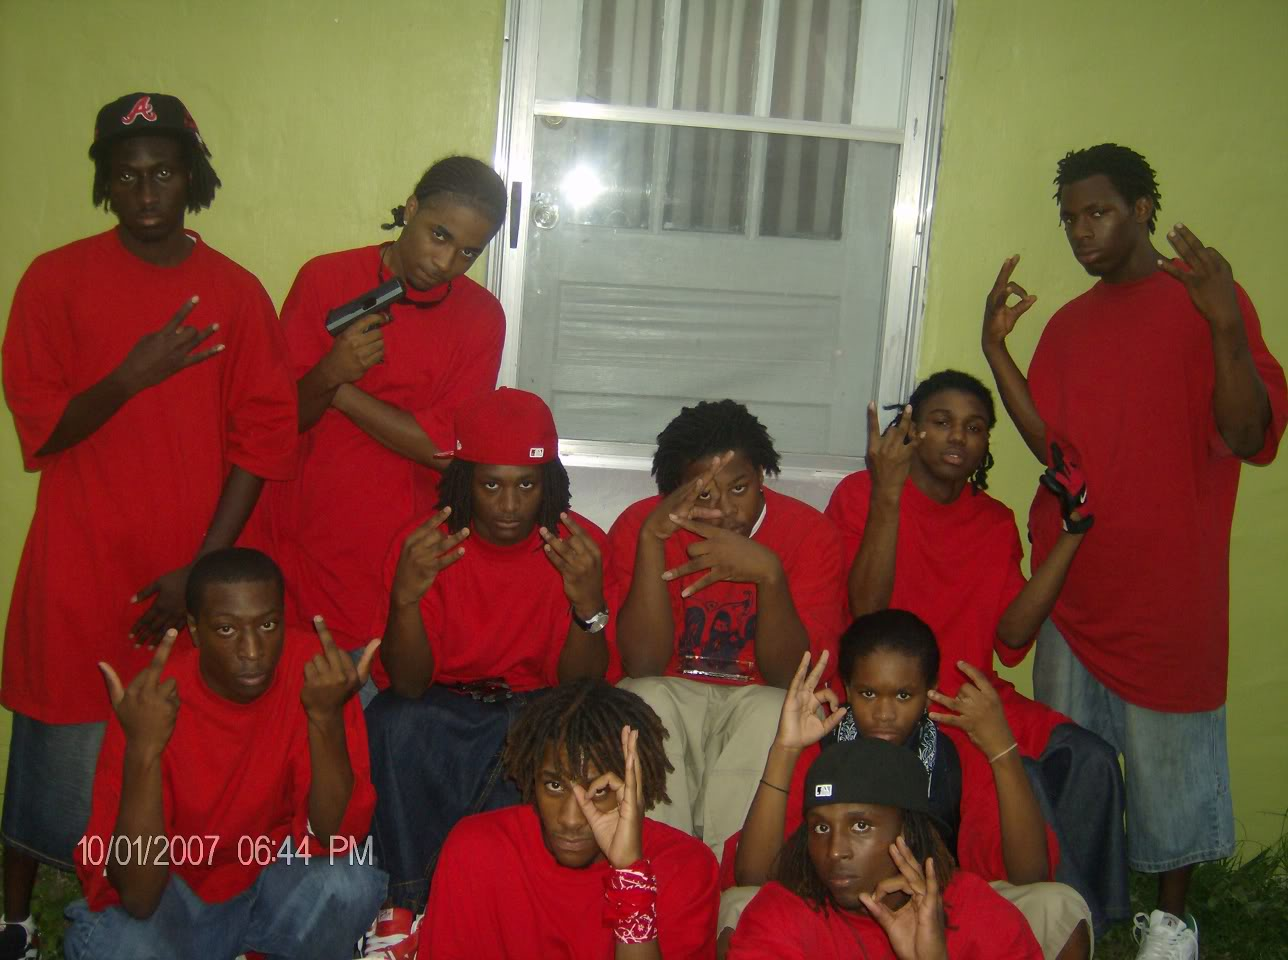 Da Blood Gang Image Da Blood Gang Picture Code 1288x960